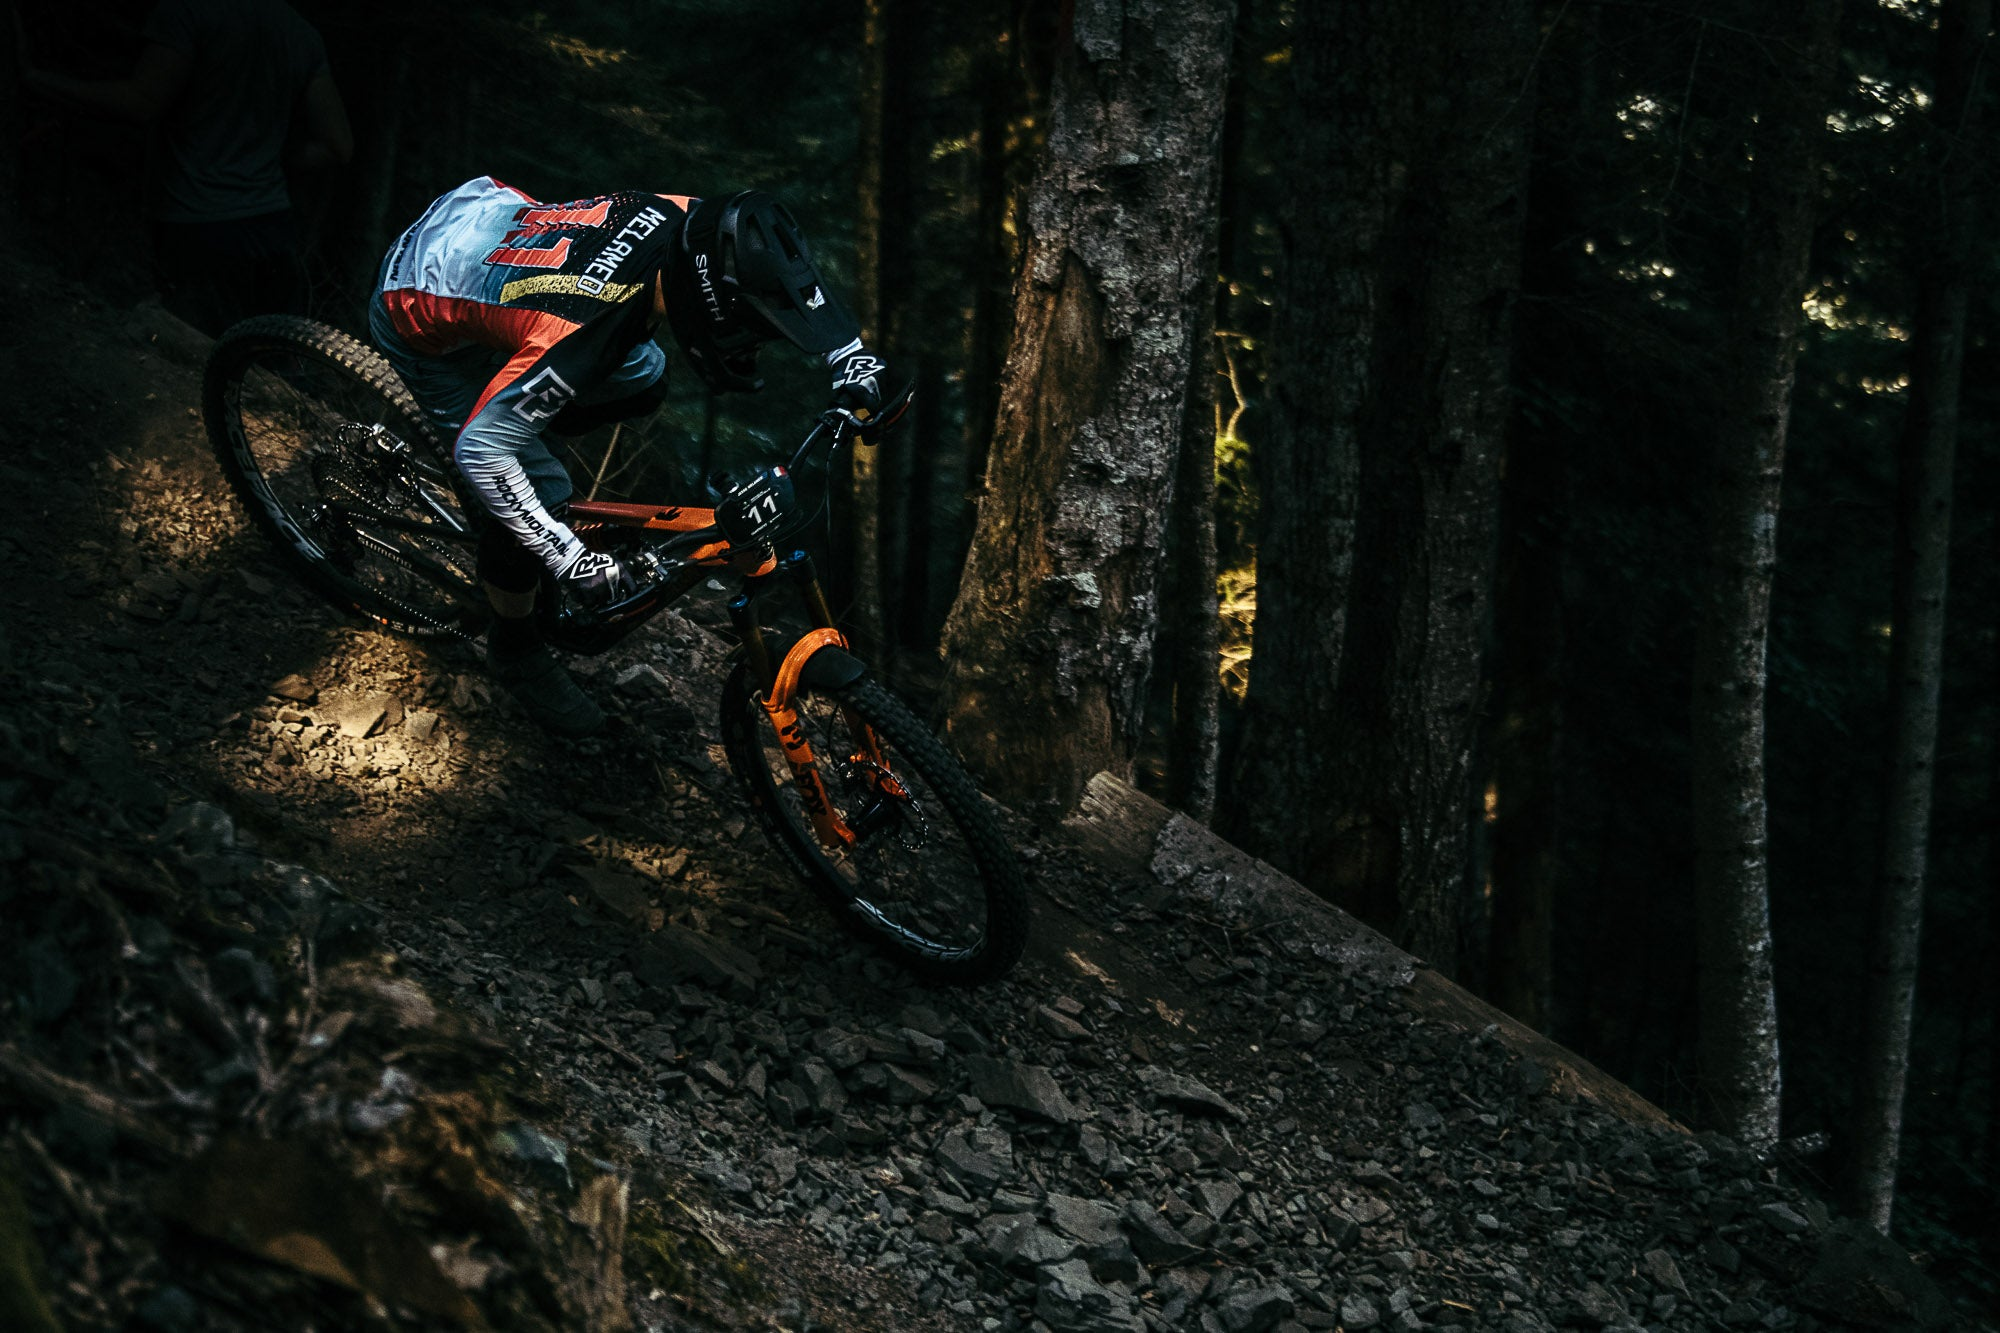 Jesse Melamed rides his Altitude in the 5th Round of the 2021 EWS season